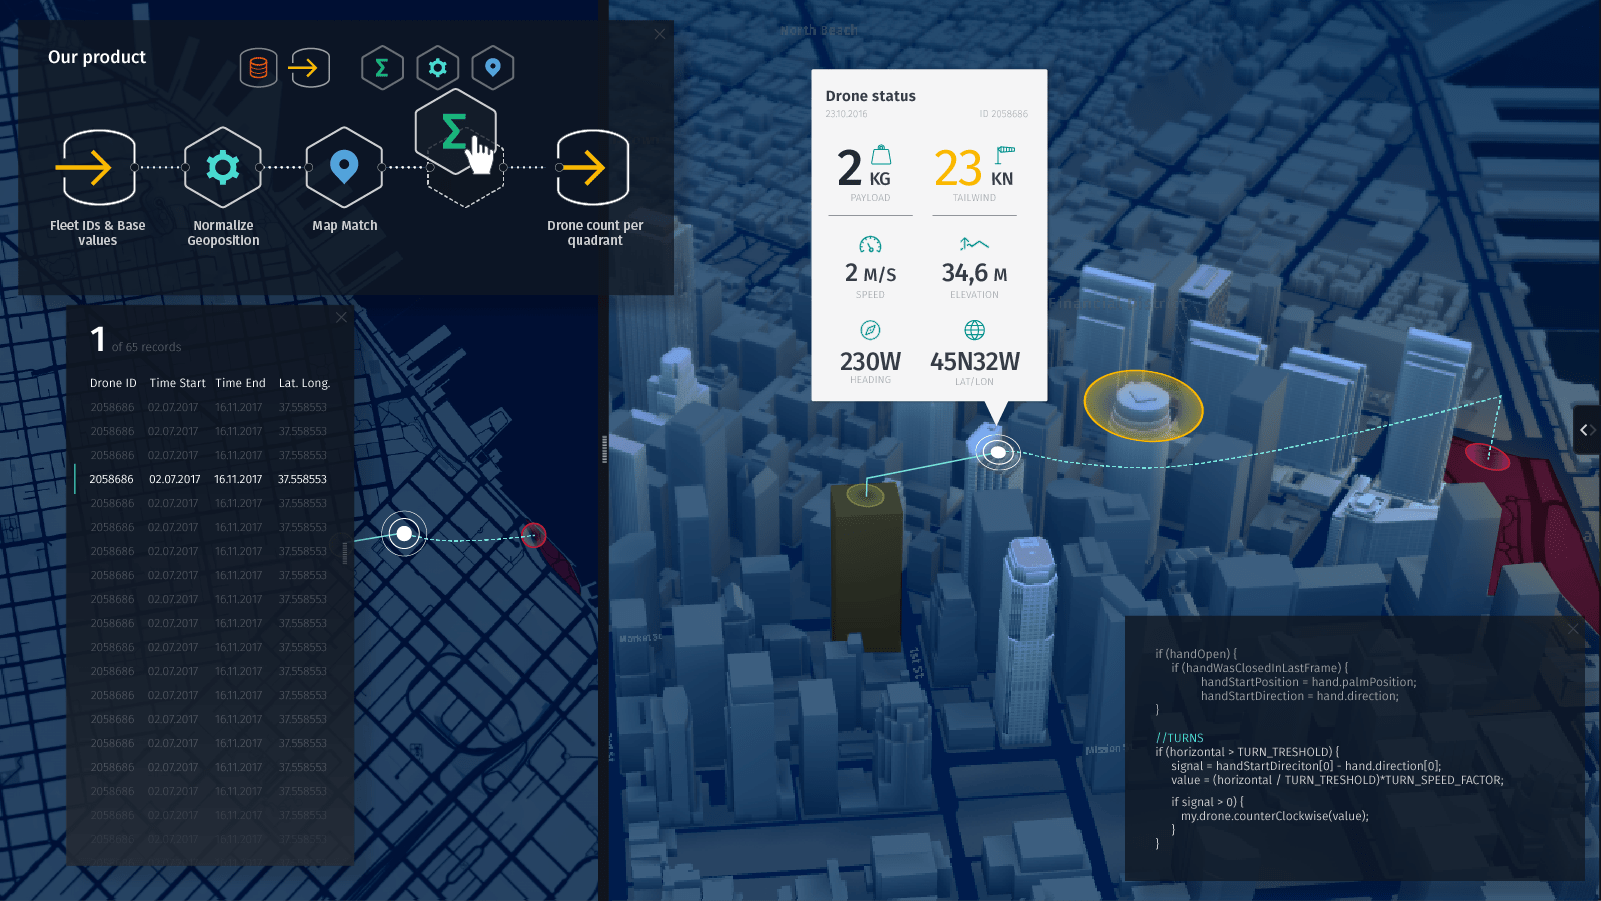 HERE shares its vision on location intelligence for smart cities